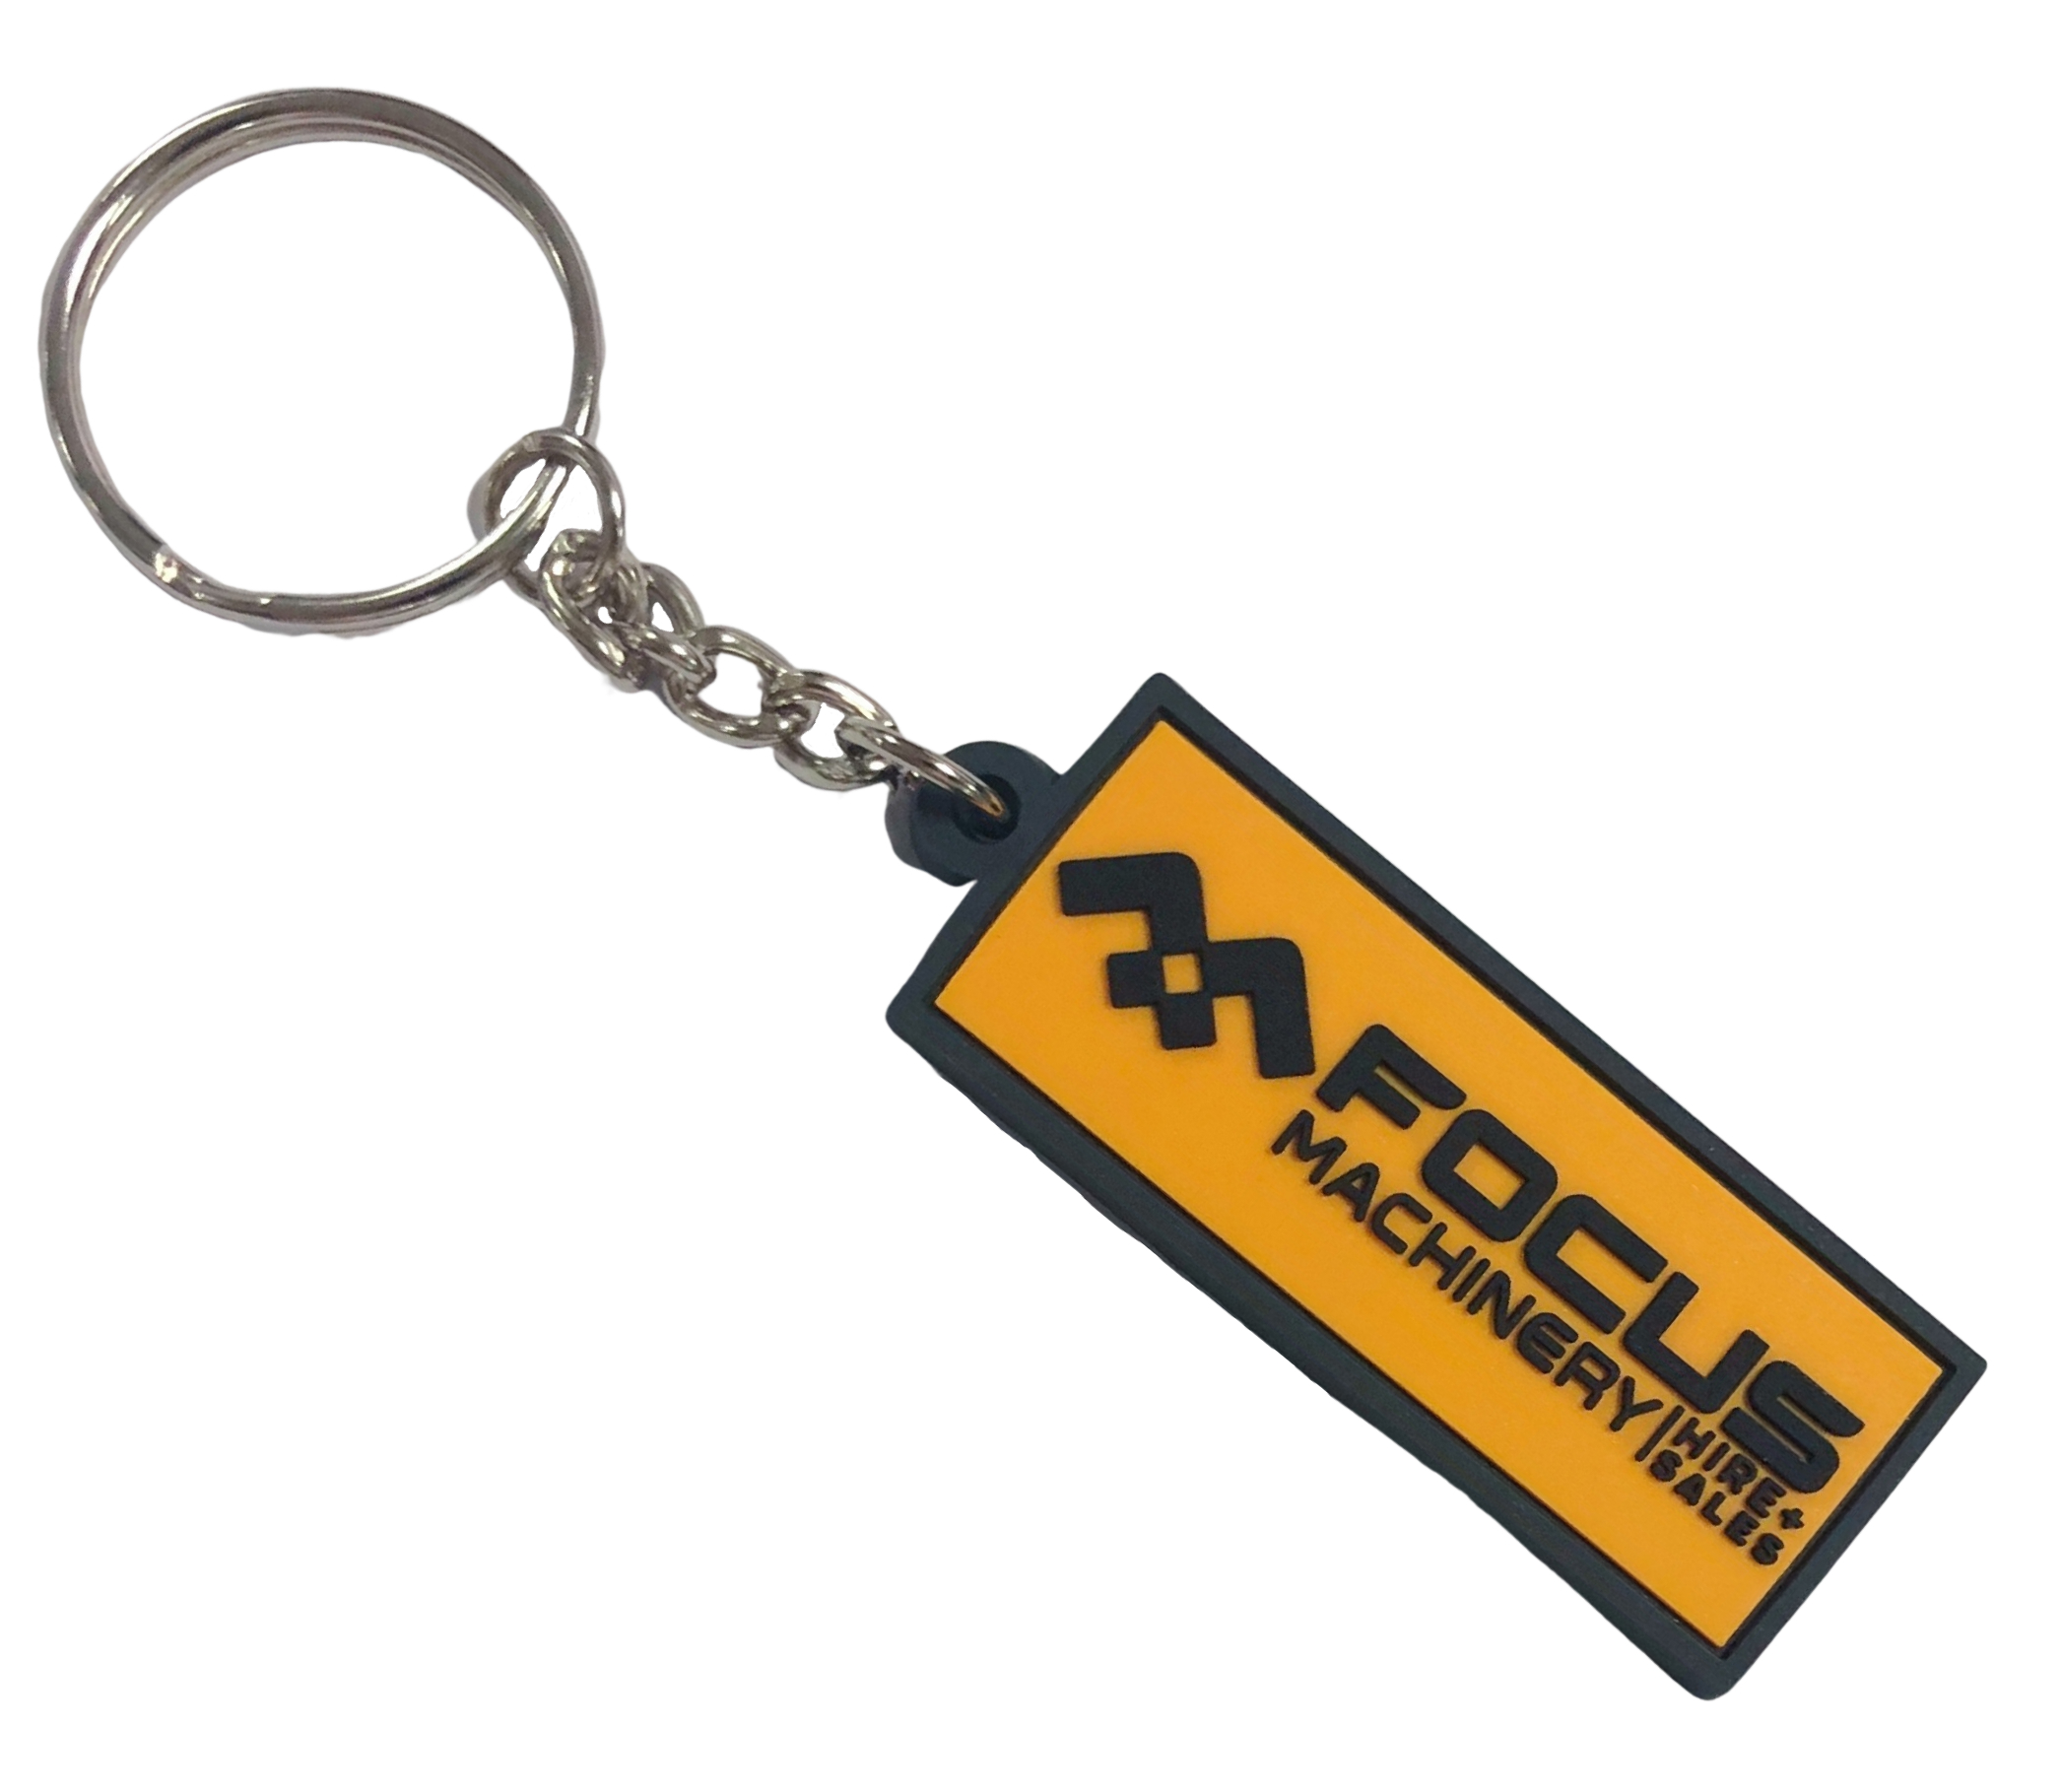 Personalised rubber keyrings for machinery hire and sales company with 2 colour 2D logo on thefront.